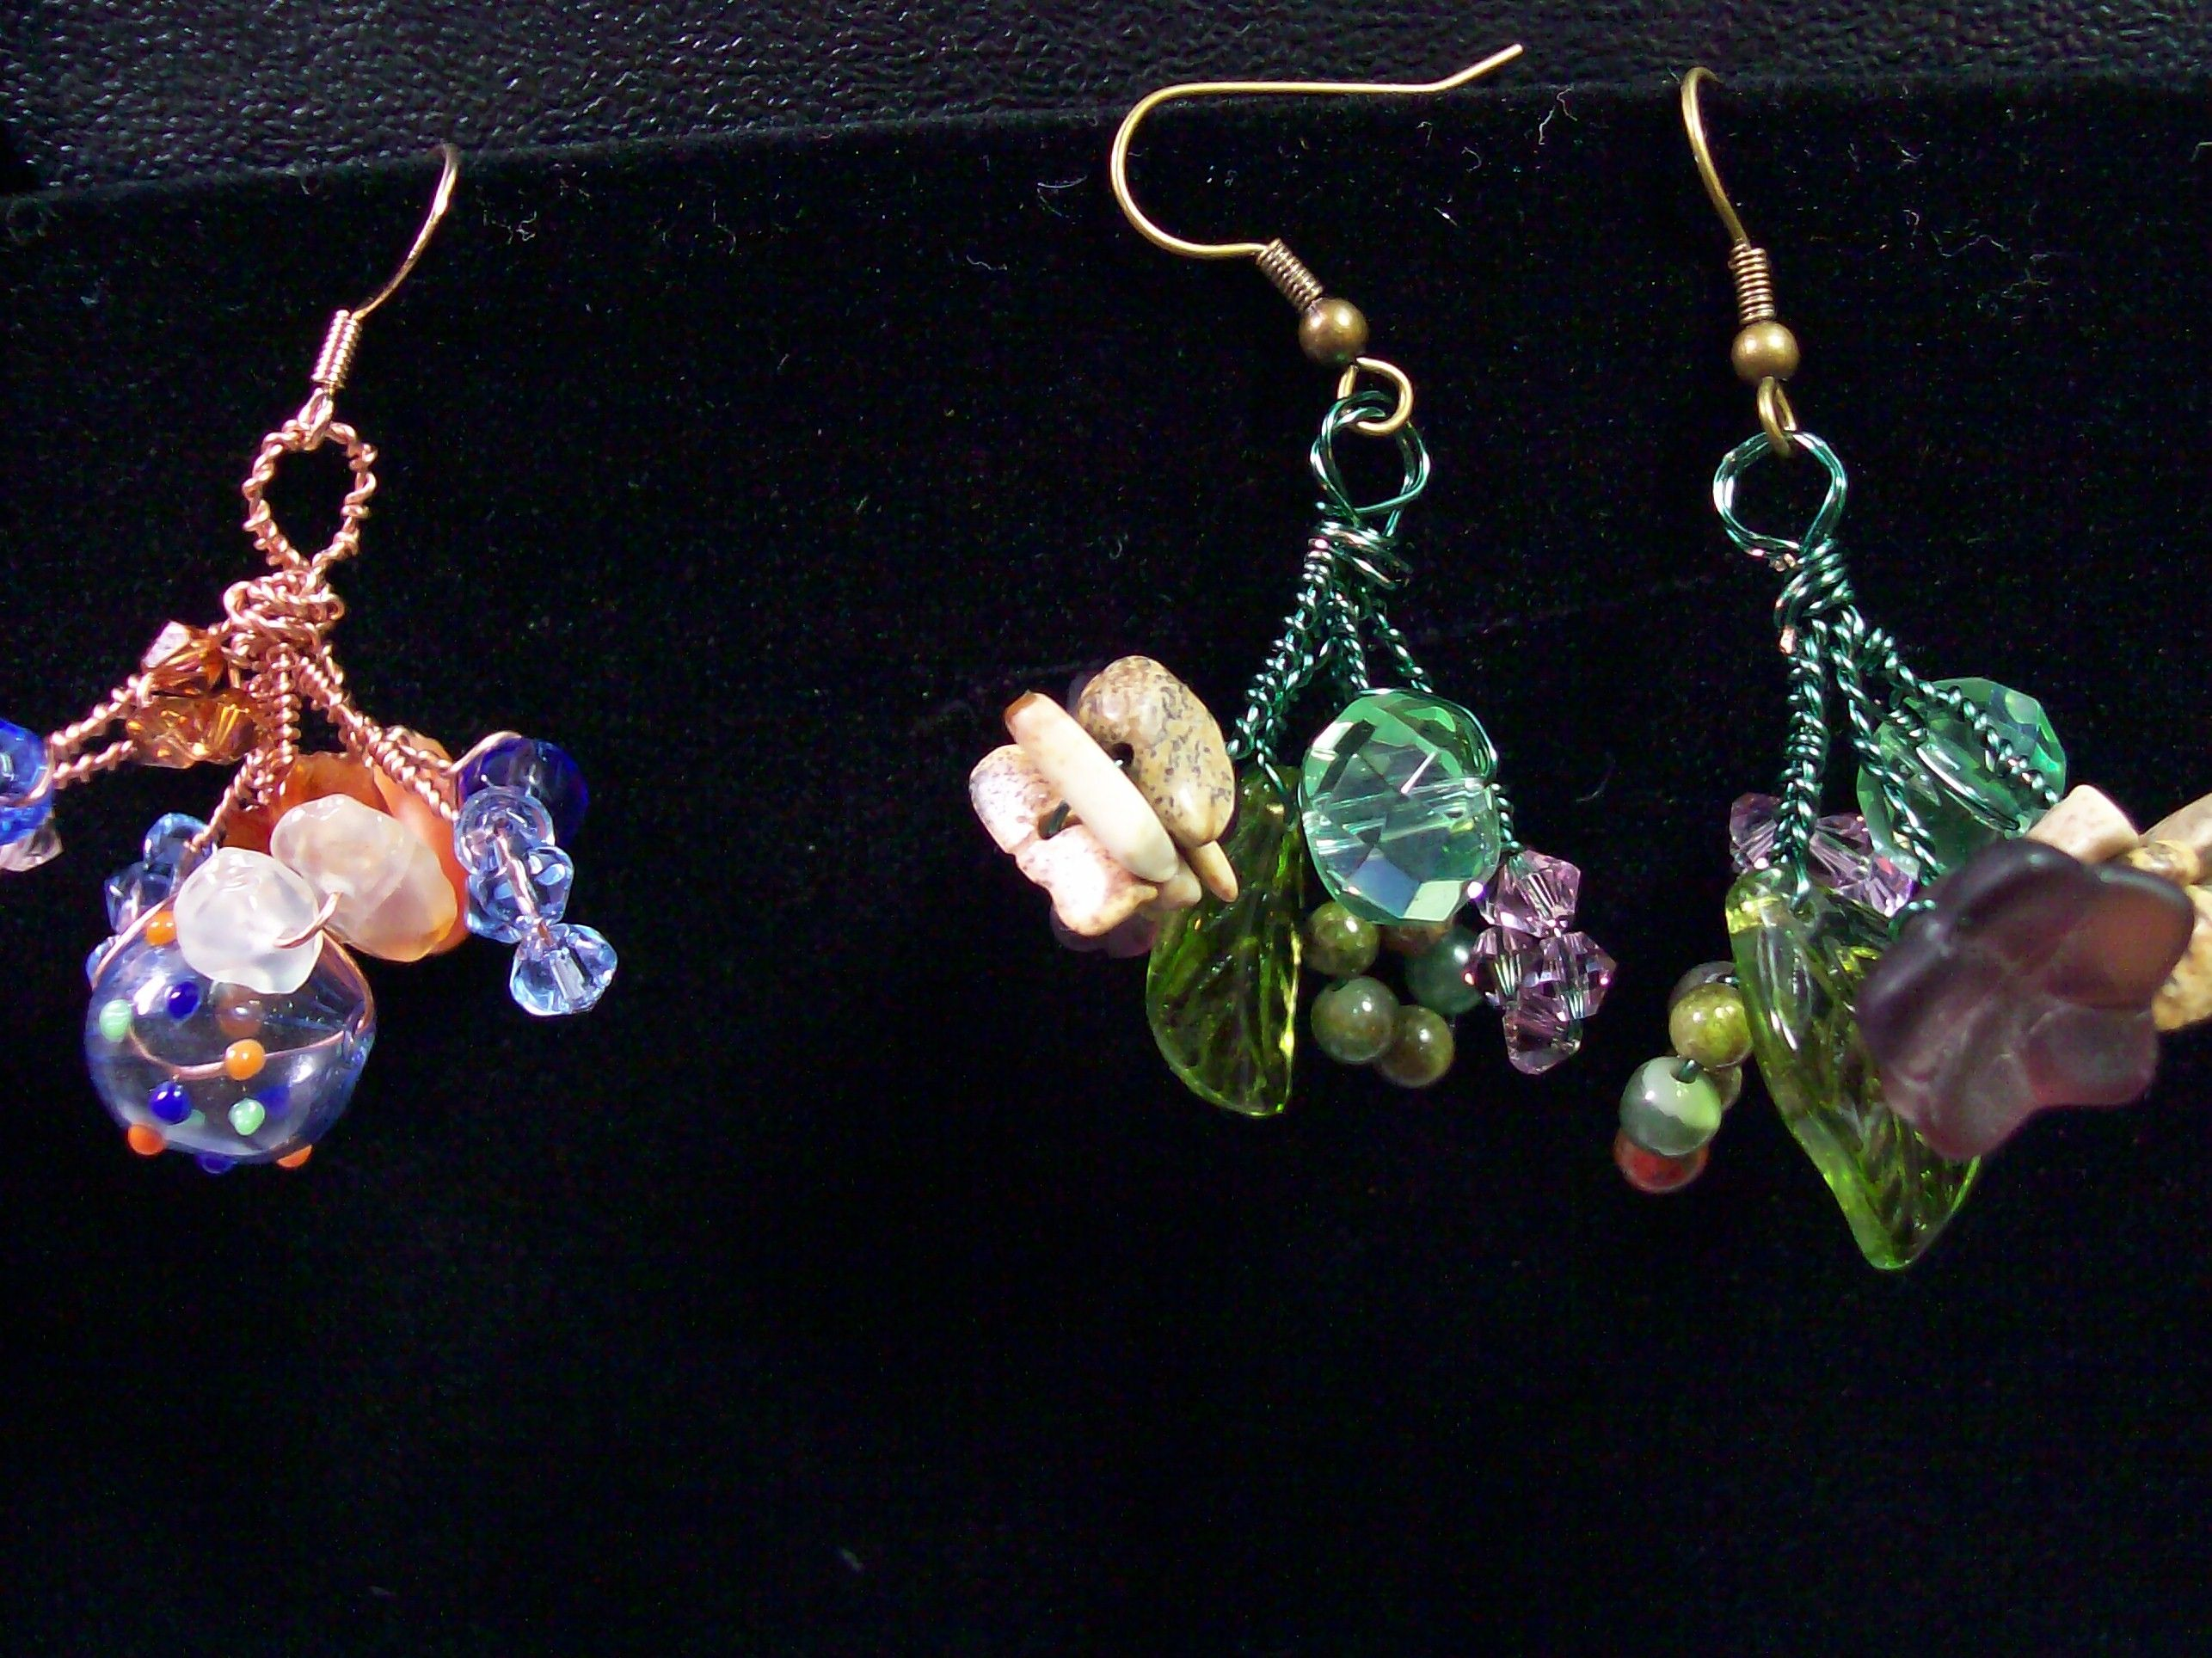 Danish cluster earrings.  I call these garden earrings.  Next to them are the wrokd earrings.